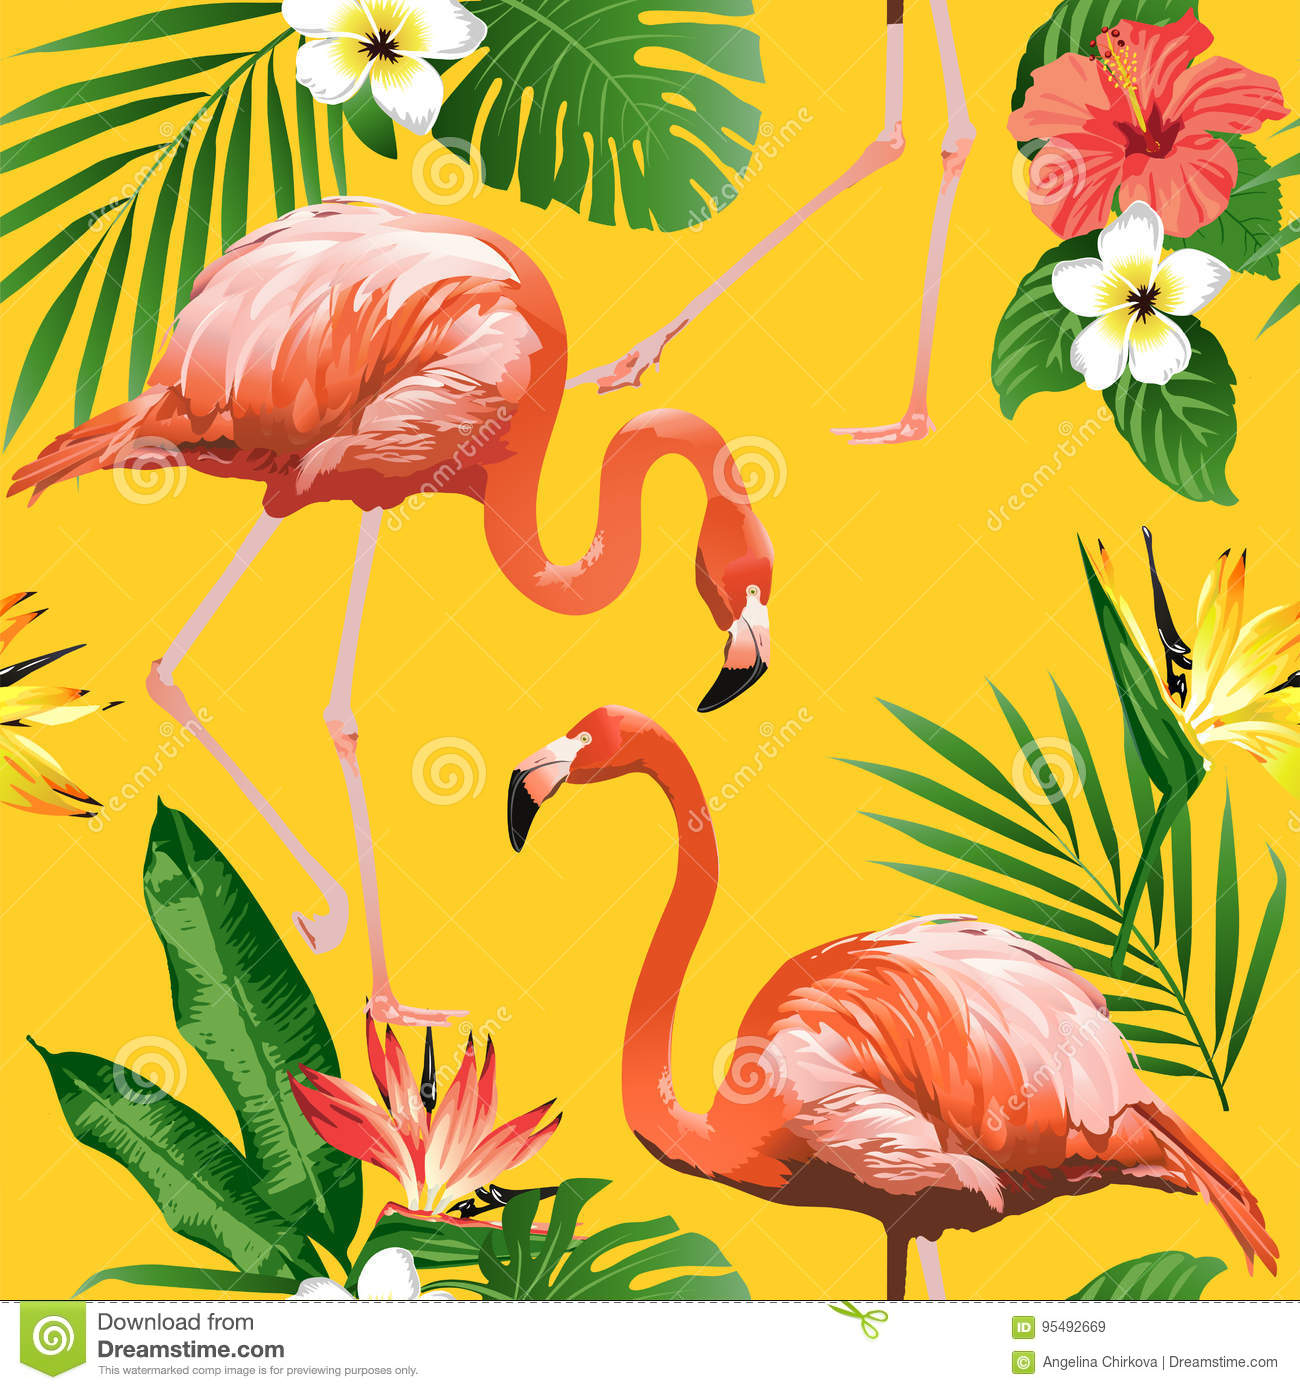 Flamingo Bird and Tropical Flowers Background - Seamless pattern